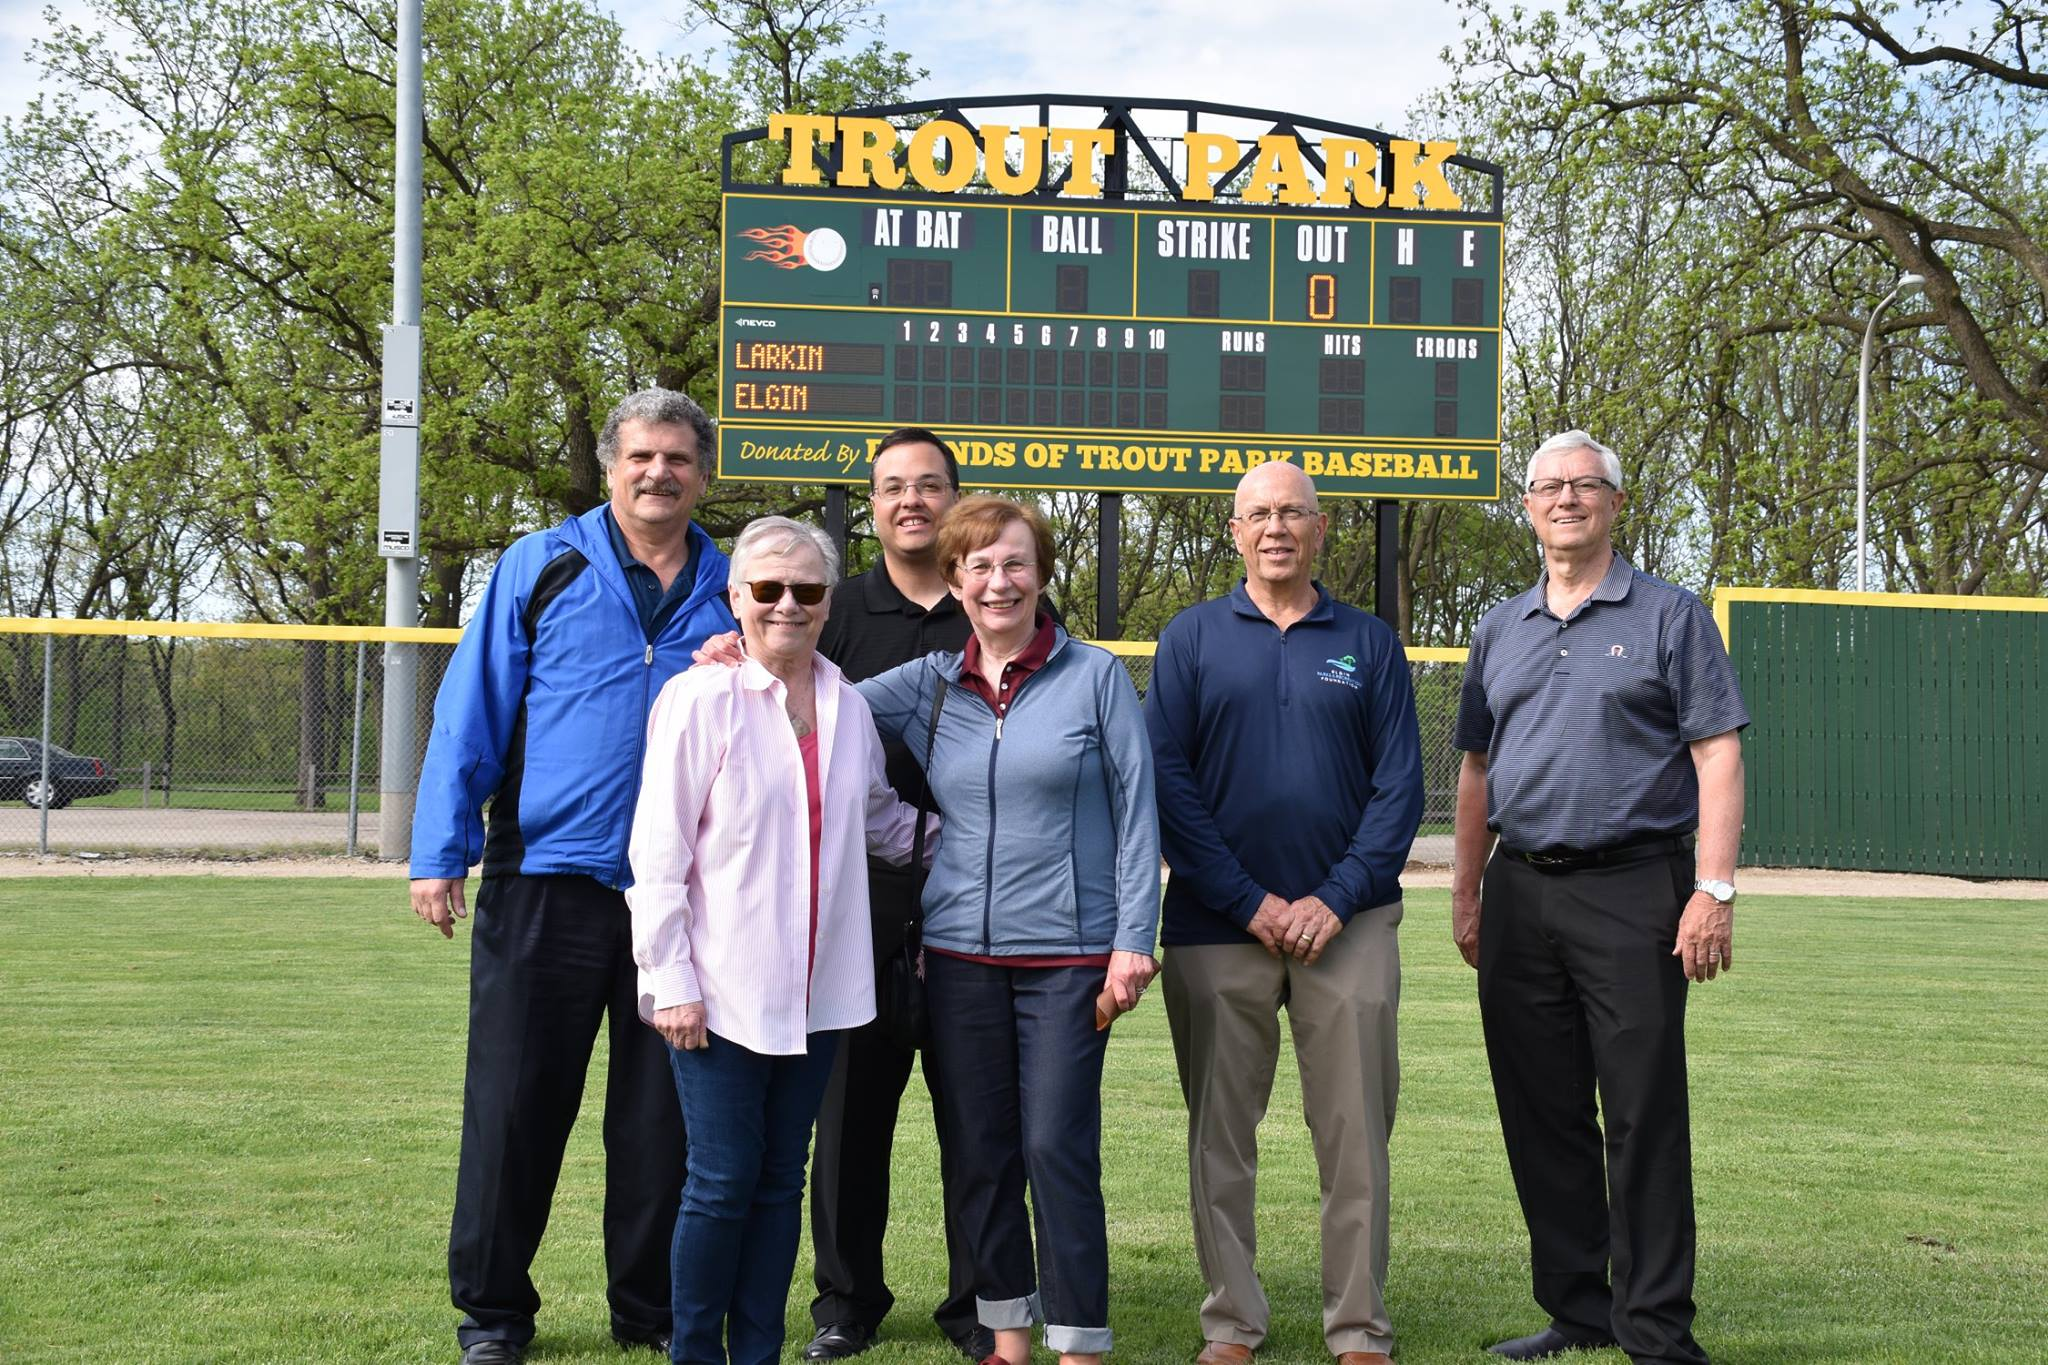 scoreboard and donation team.jpg